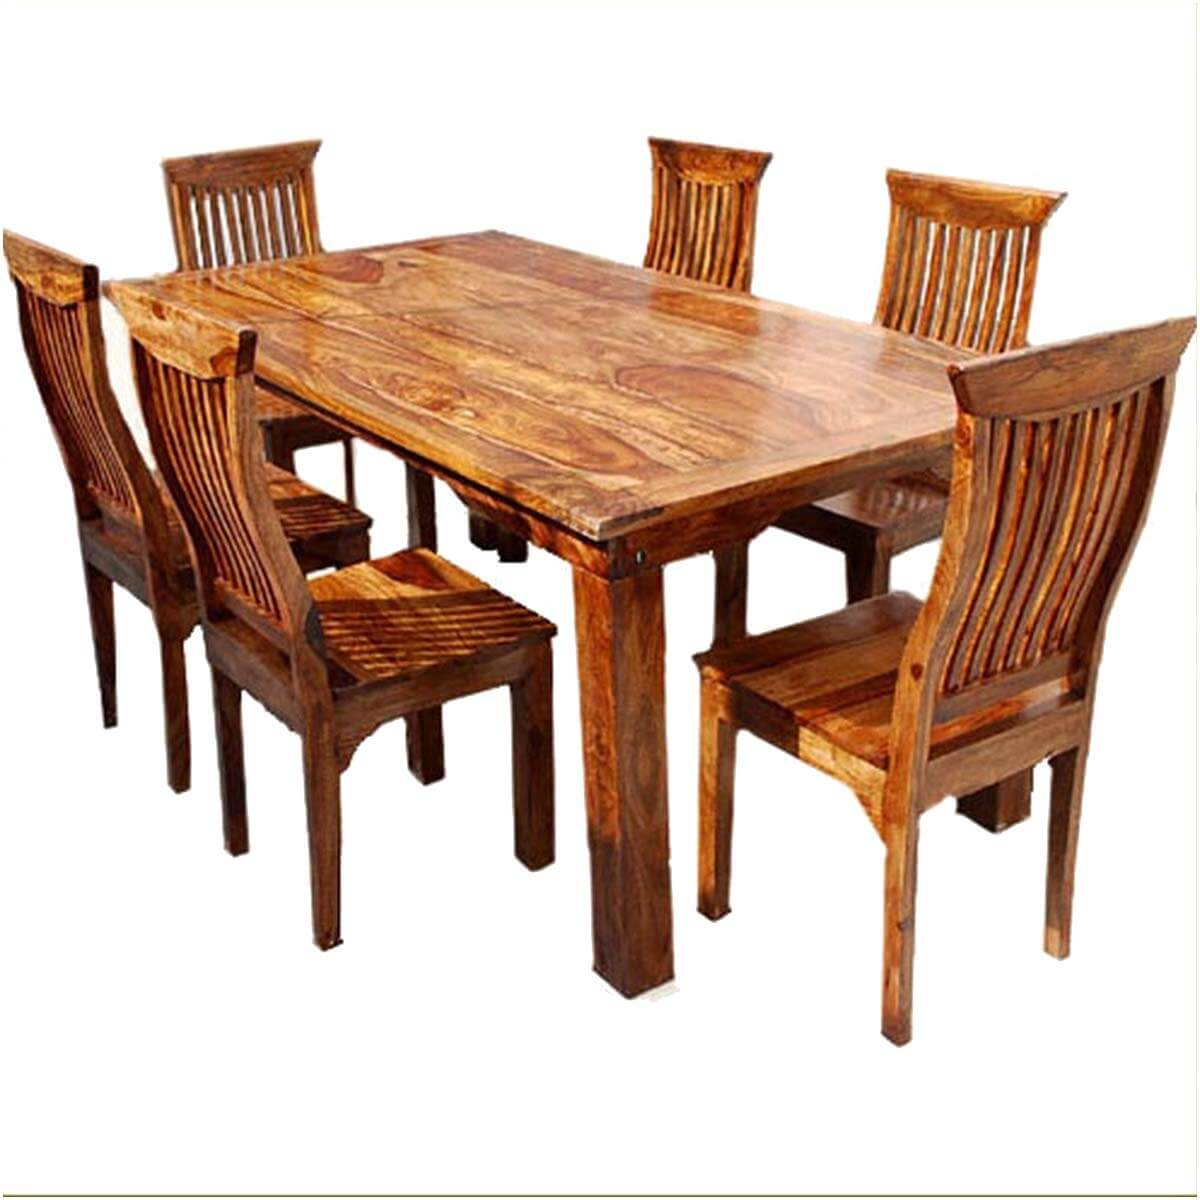 Dallas ranch solid wood rustic dining table chairs hutch set for Solid wood furniture